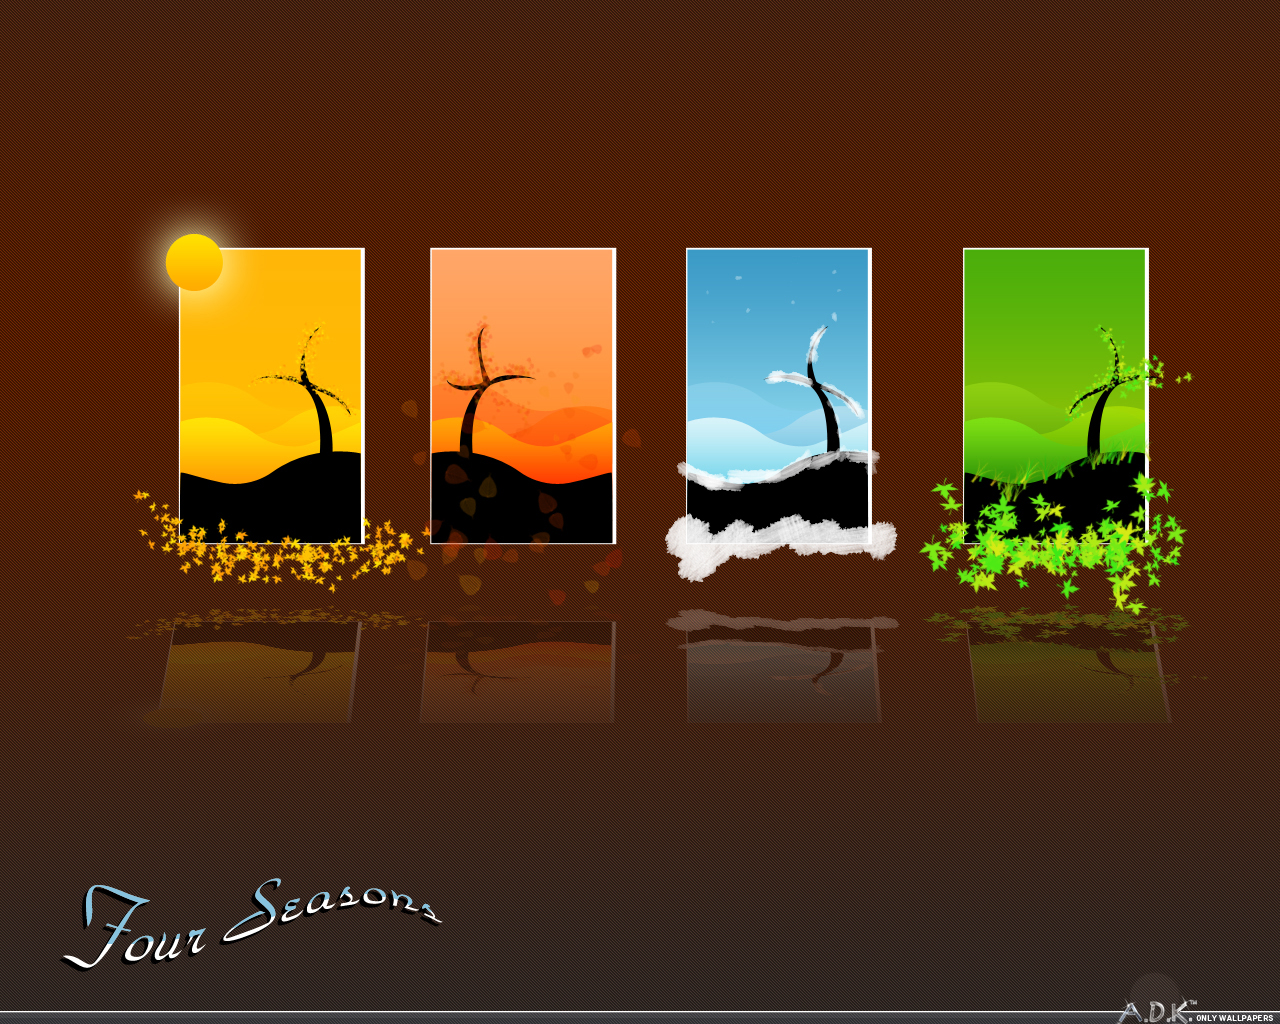 Four Seasons Backgrounds Desktop Image 1280x1024